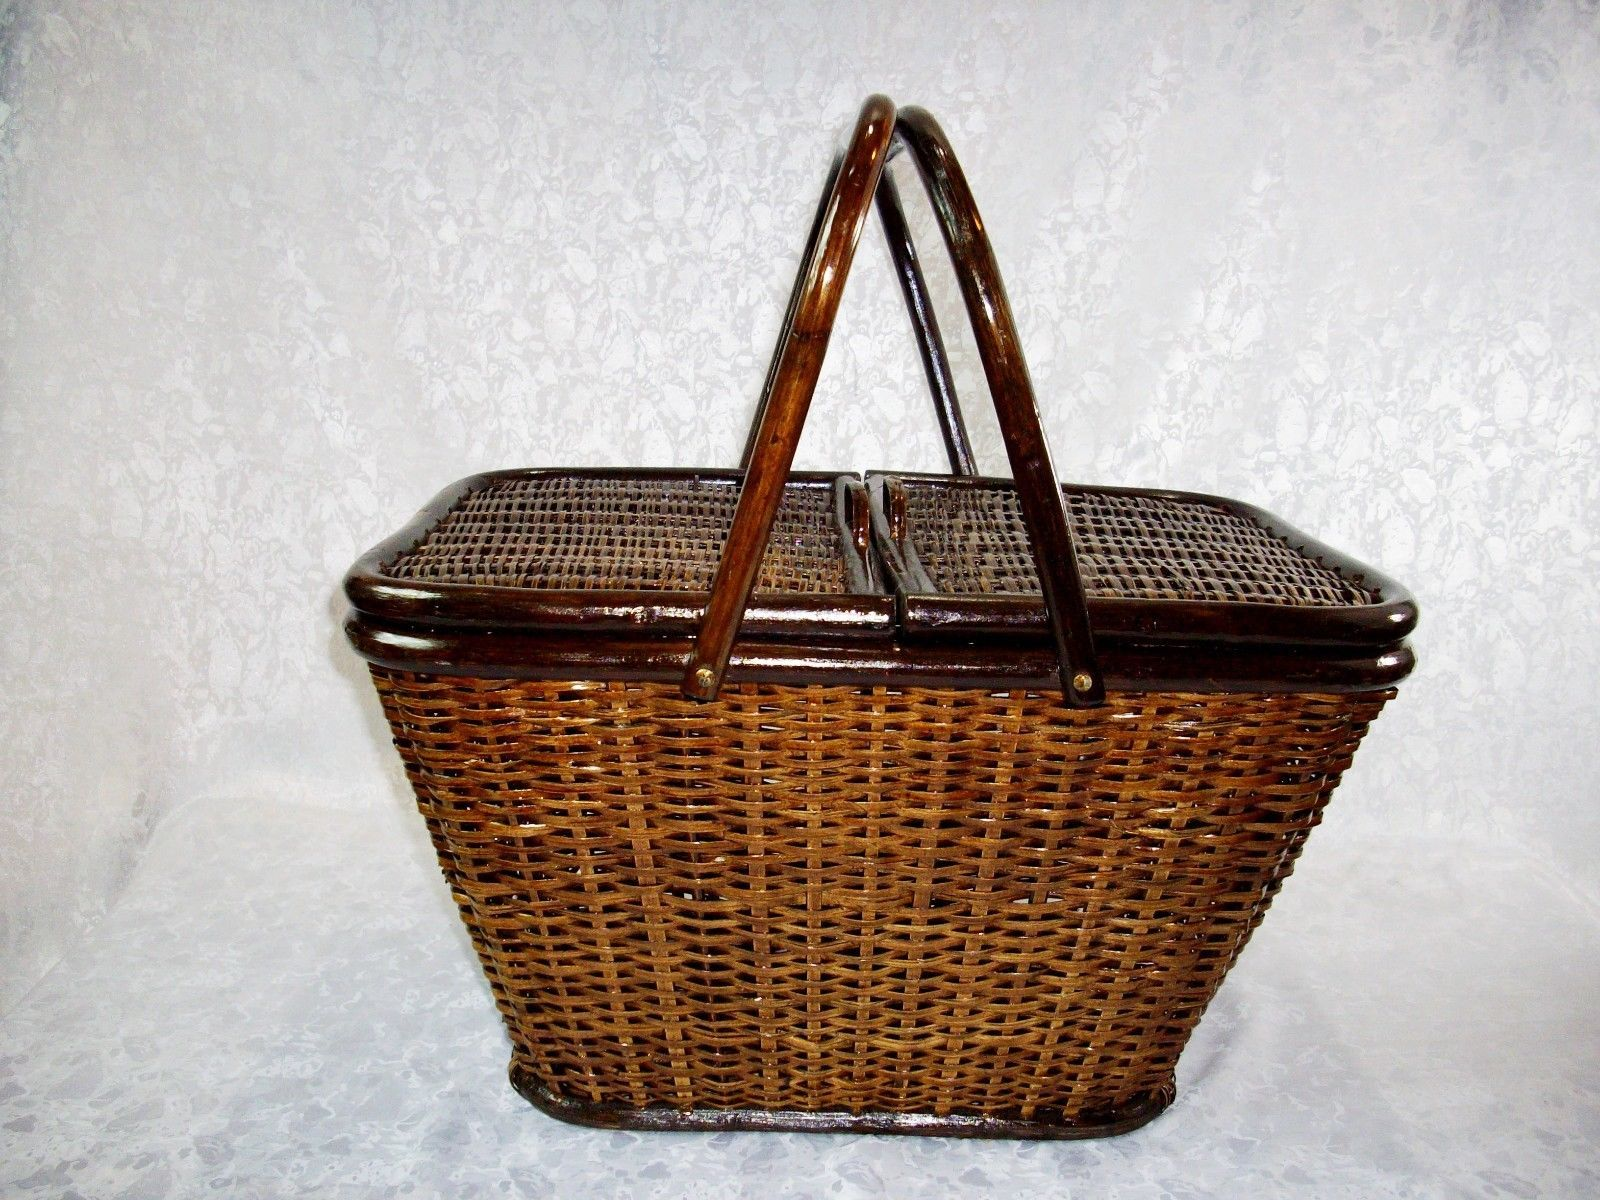 Picnic Basket Items : Vintage dark brown wicker picnic basket and similar items